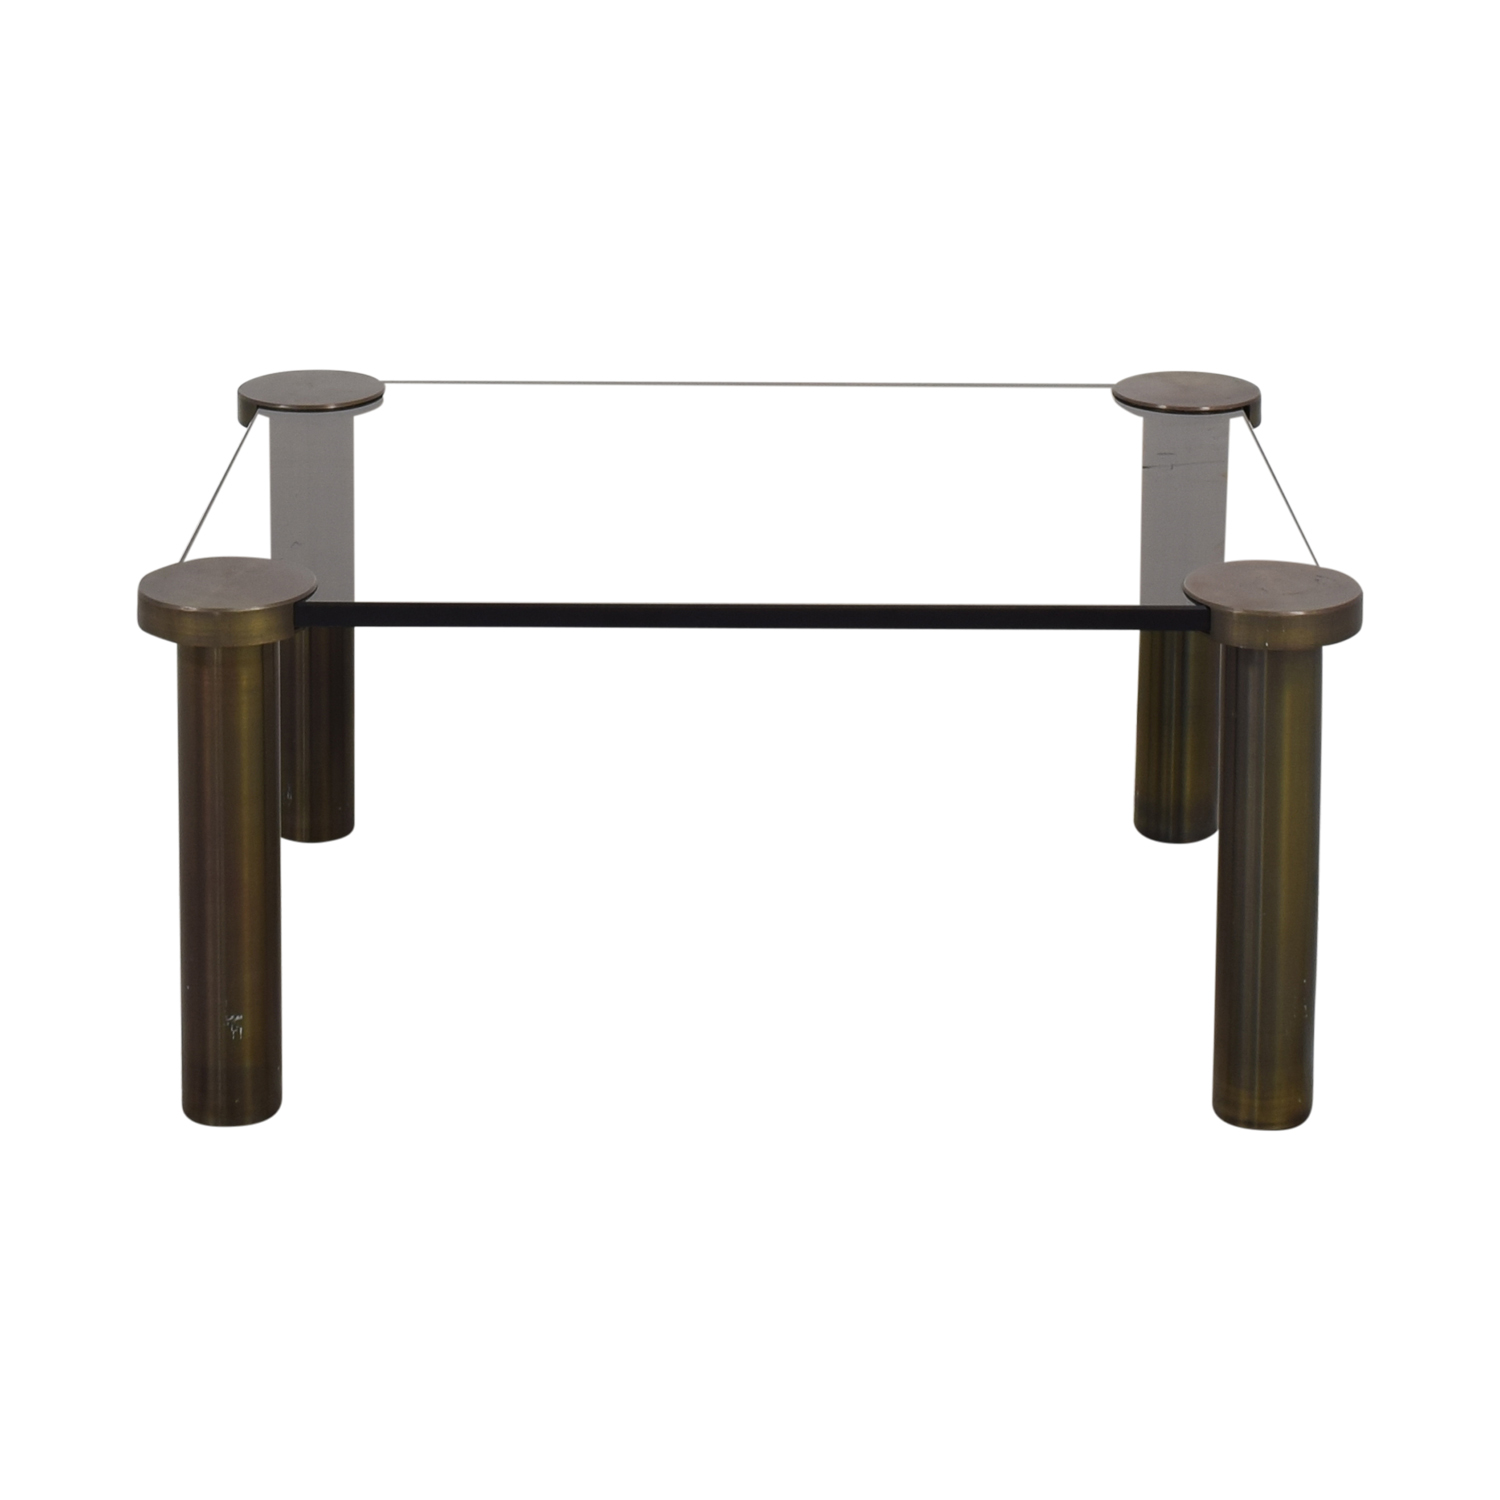 Modern Coffee Table dark grey & bronze